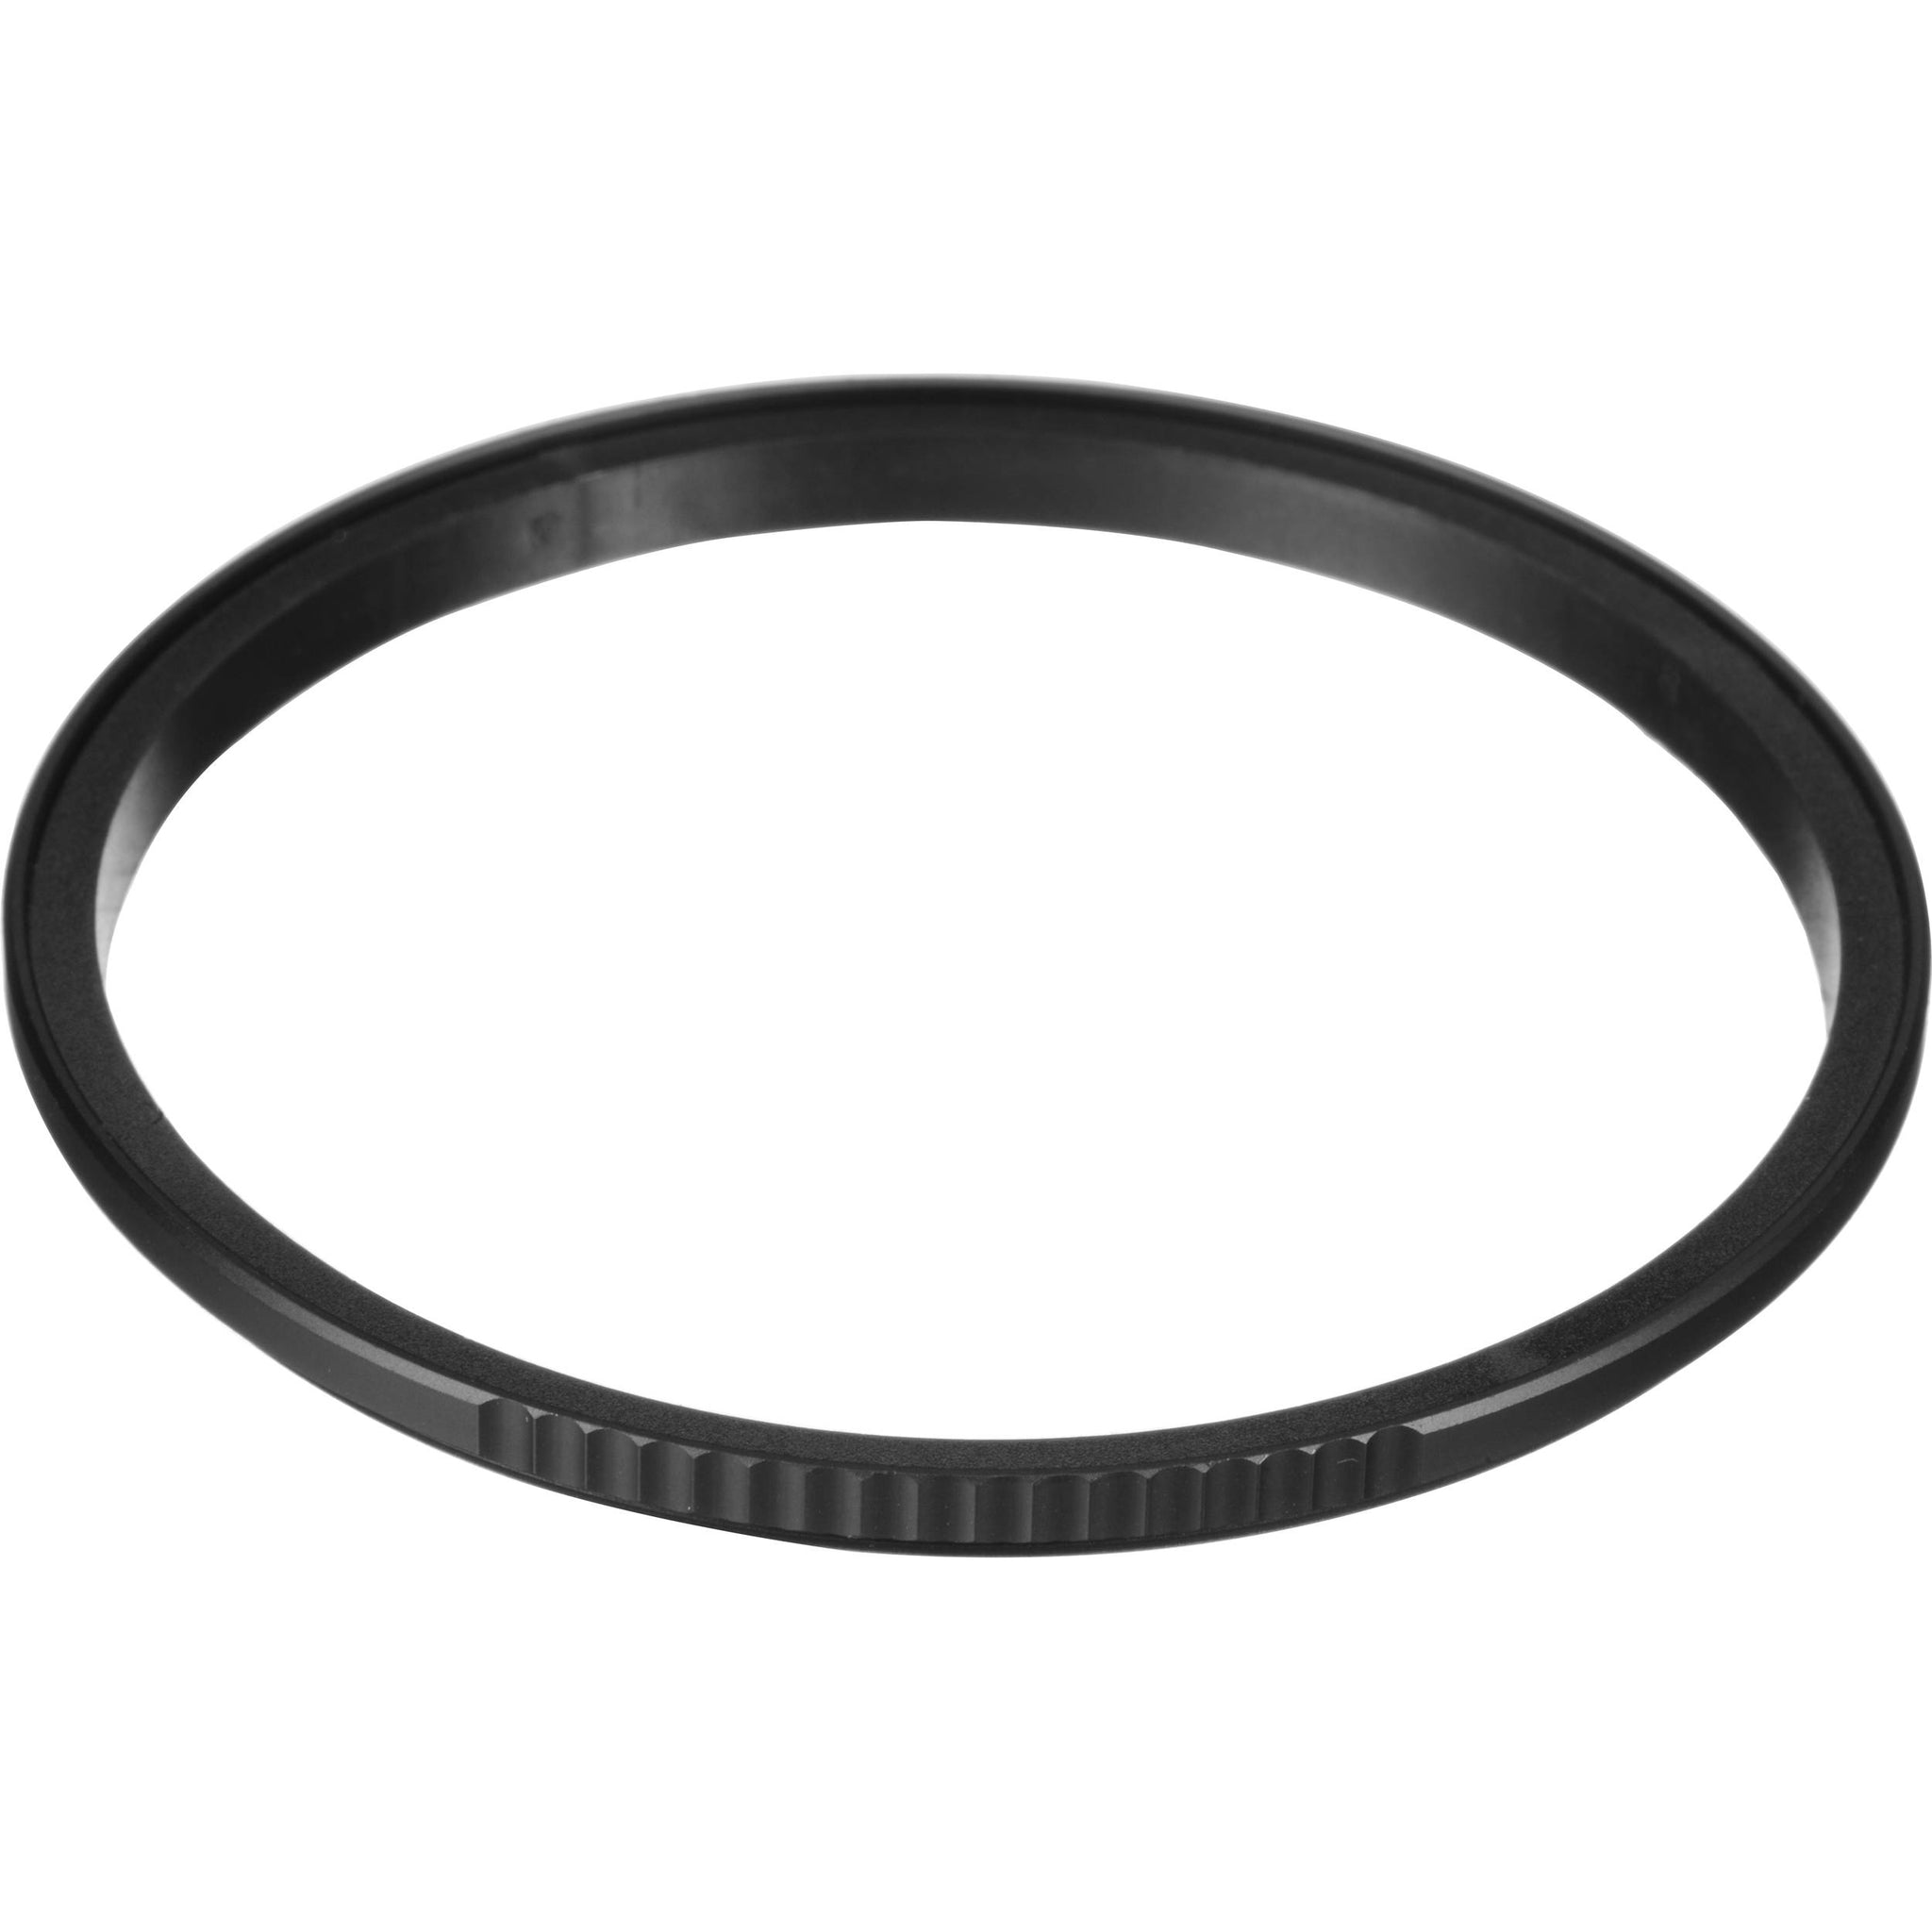 XUME 72mm Lens Adapter